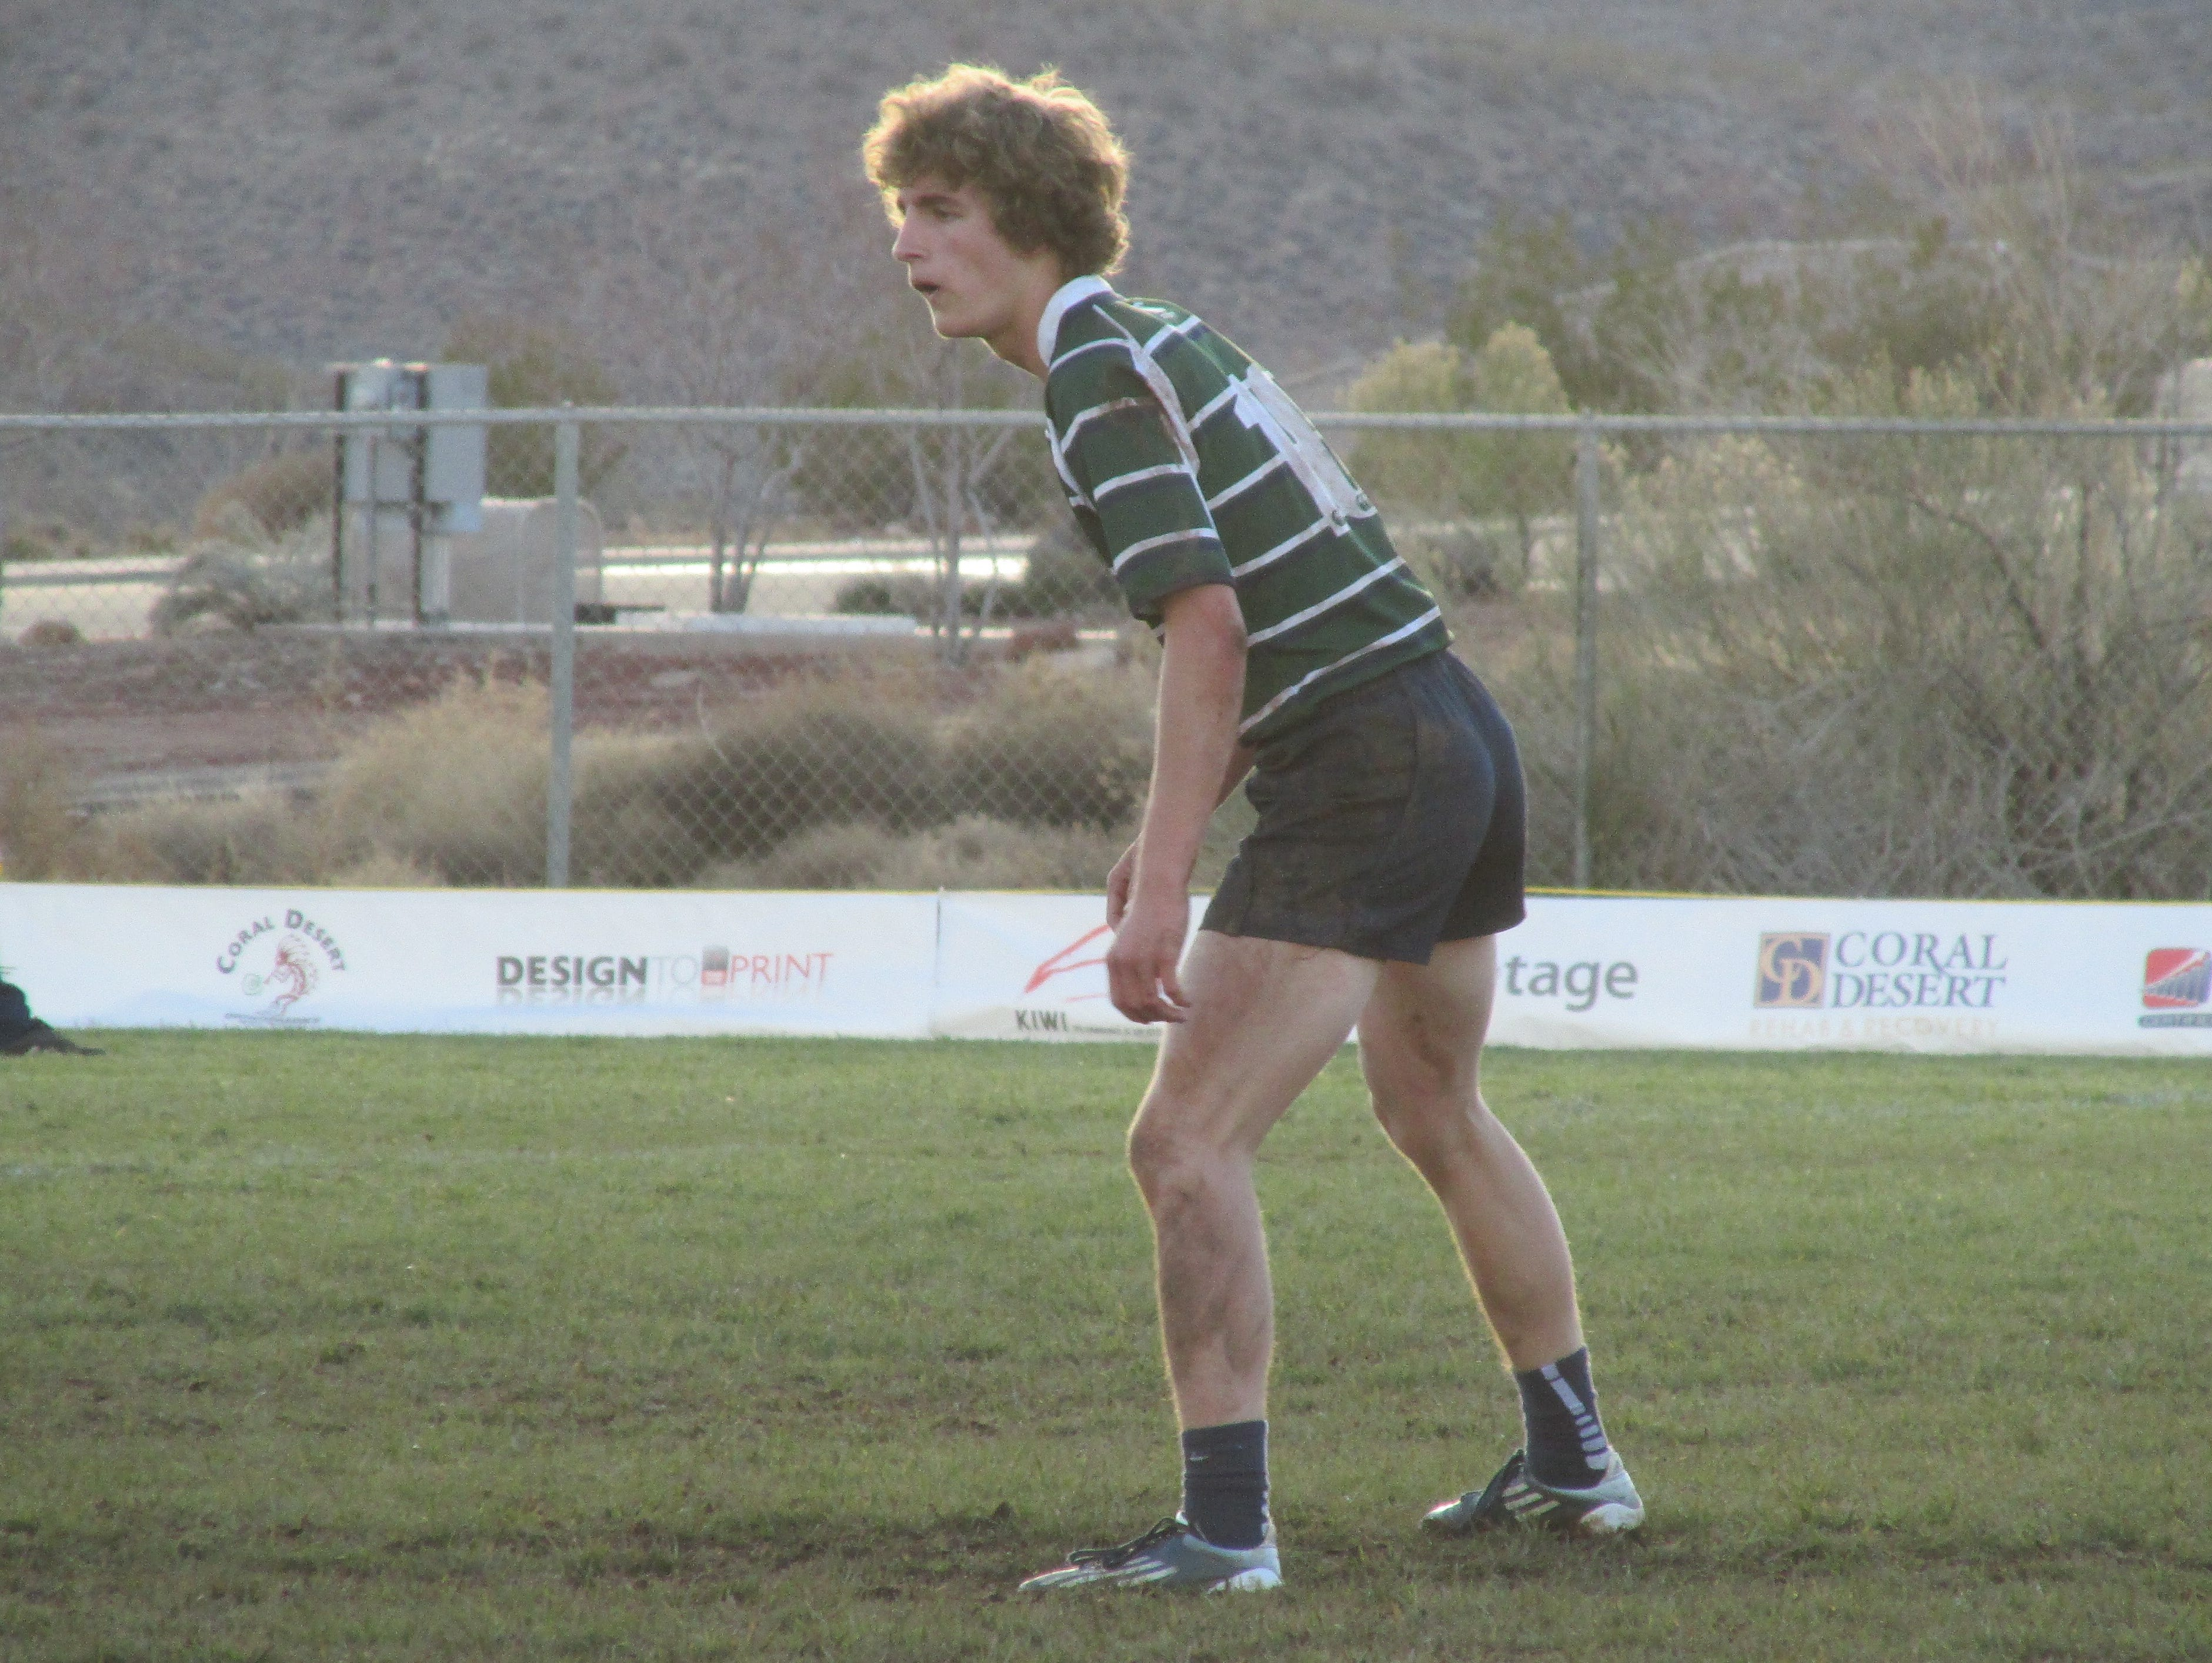 """Snow Canyon's Braden Bringhurst was given the nickname """"Honey Badger"""" from his teammates and coaches because of his resemblance to Australian rugby star Nick Cummins."""